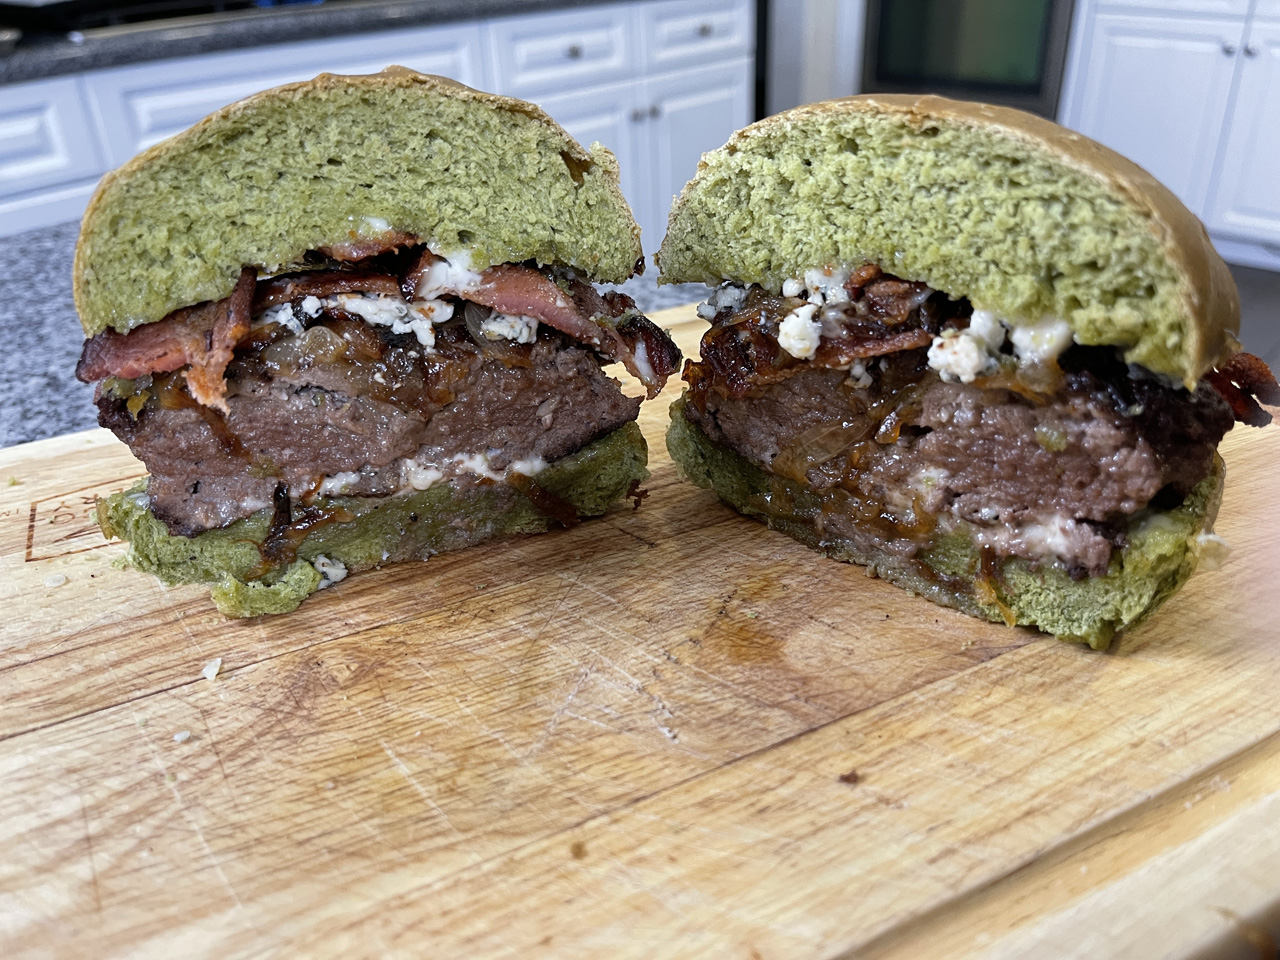 Photo of Completed Spinach Bun and Burger cut in half with Crisp Bacon, Carmelized Onions, and Blue Cheese